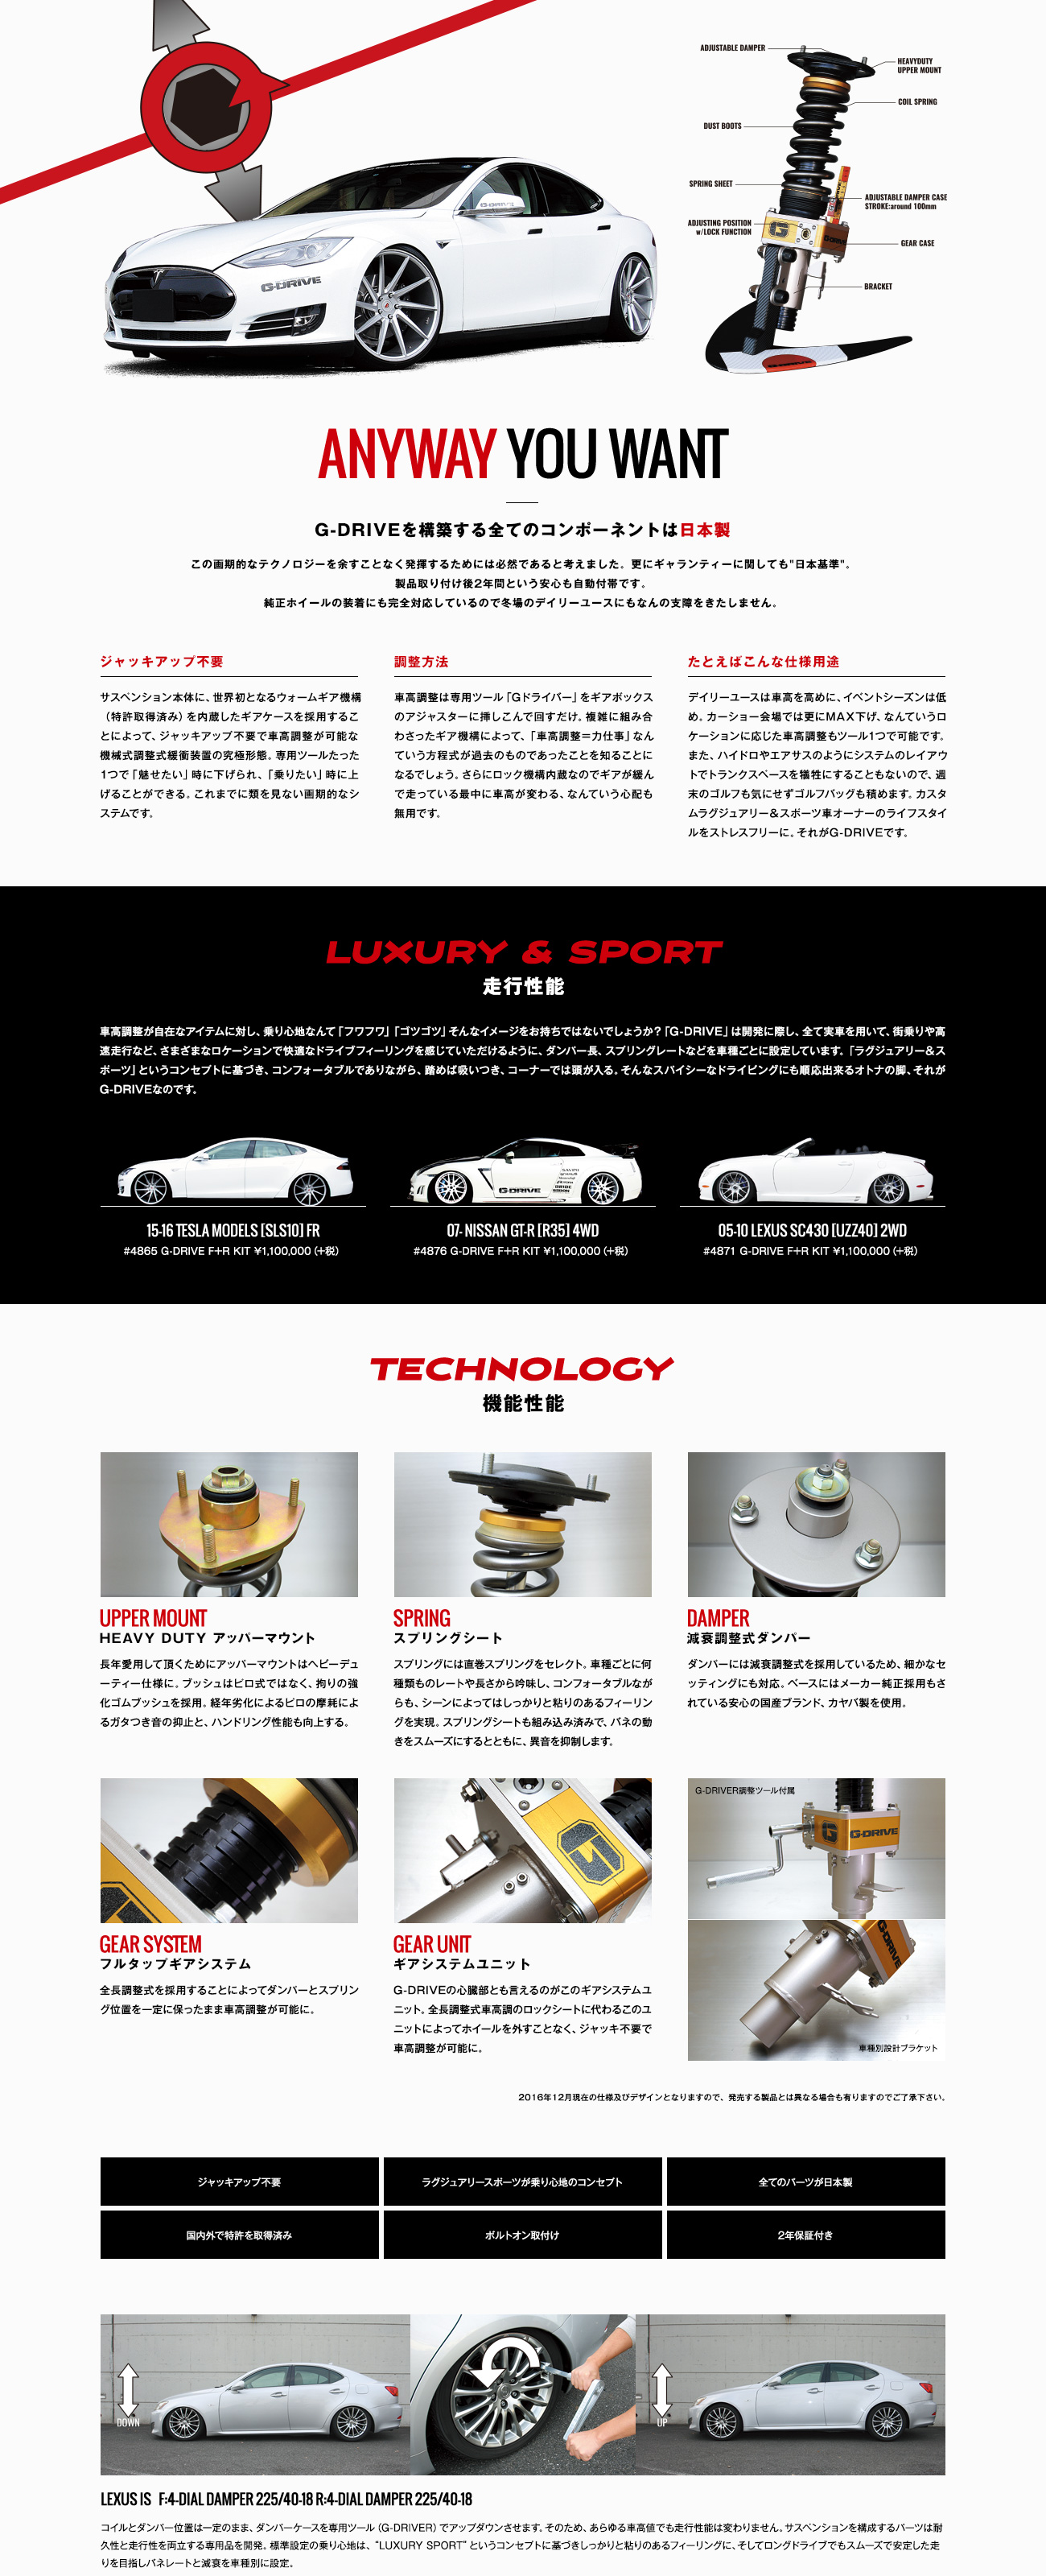 ja-jp_product_gearsuspension_system